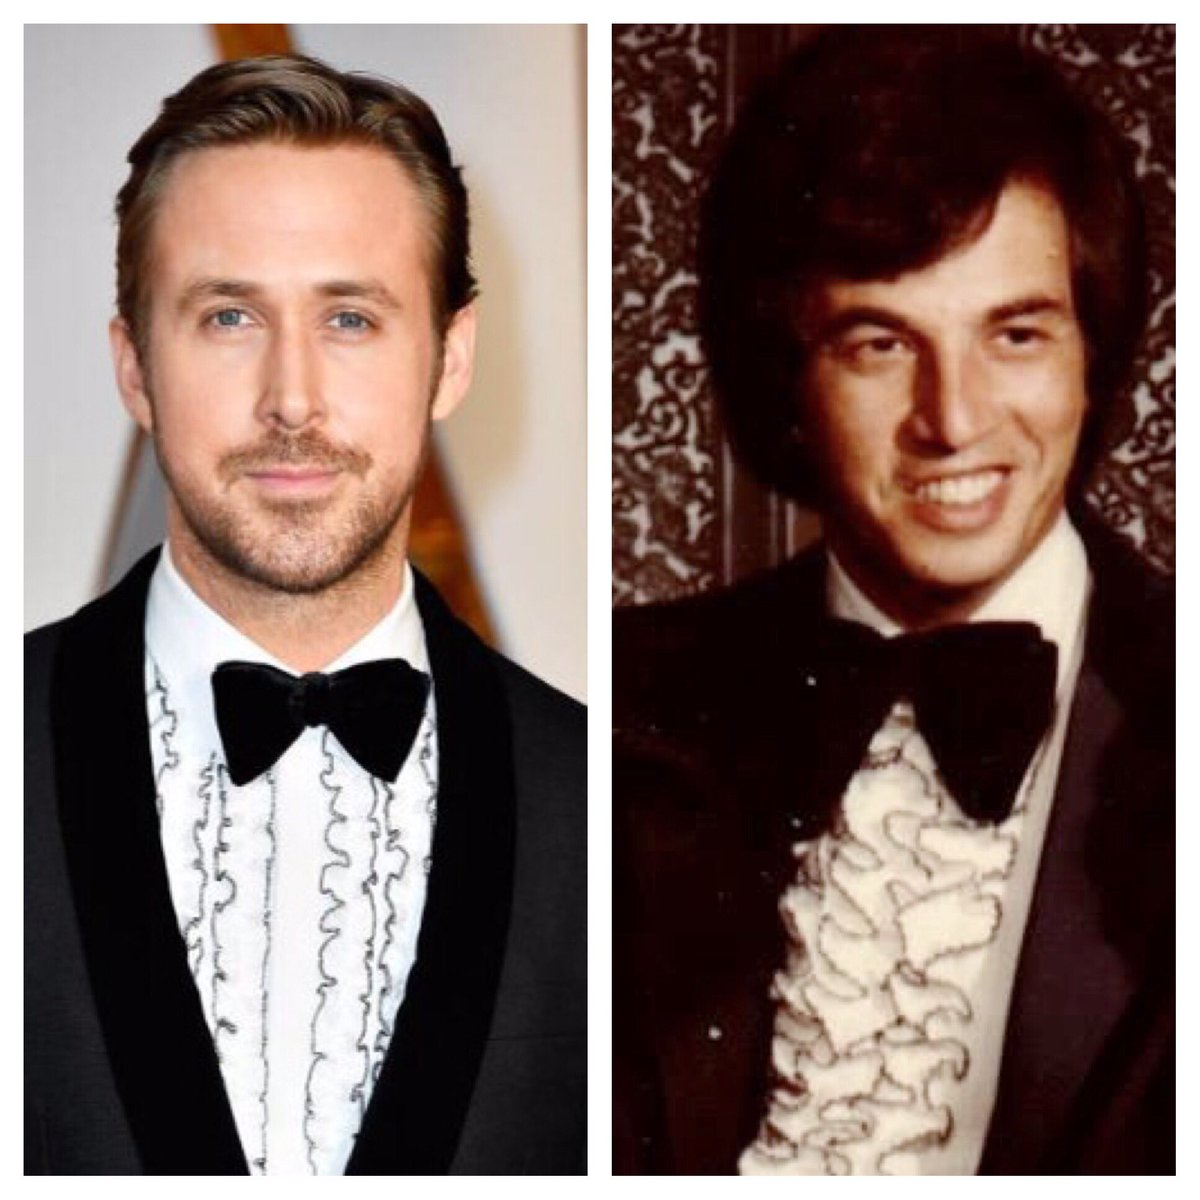 Who wore it better: Ryan Gosling or my dad, Norman, at my parents' 1975 wedding? #Oscars https://t.co/uYJfl2lloD